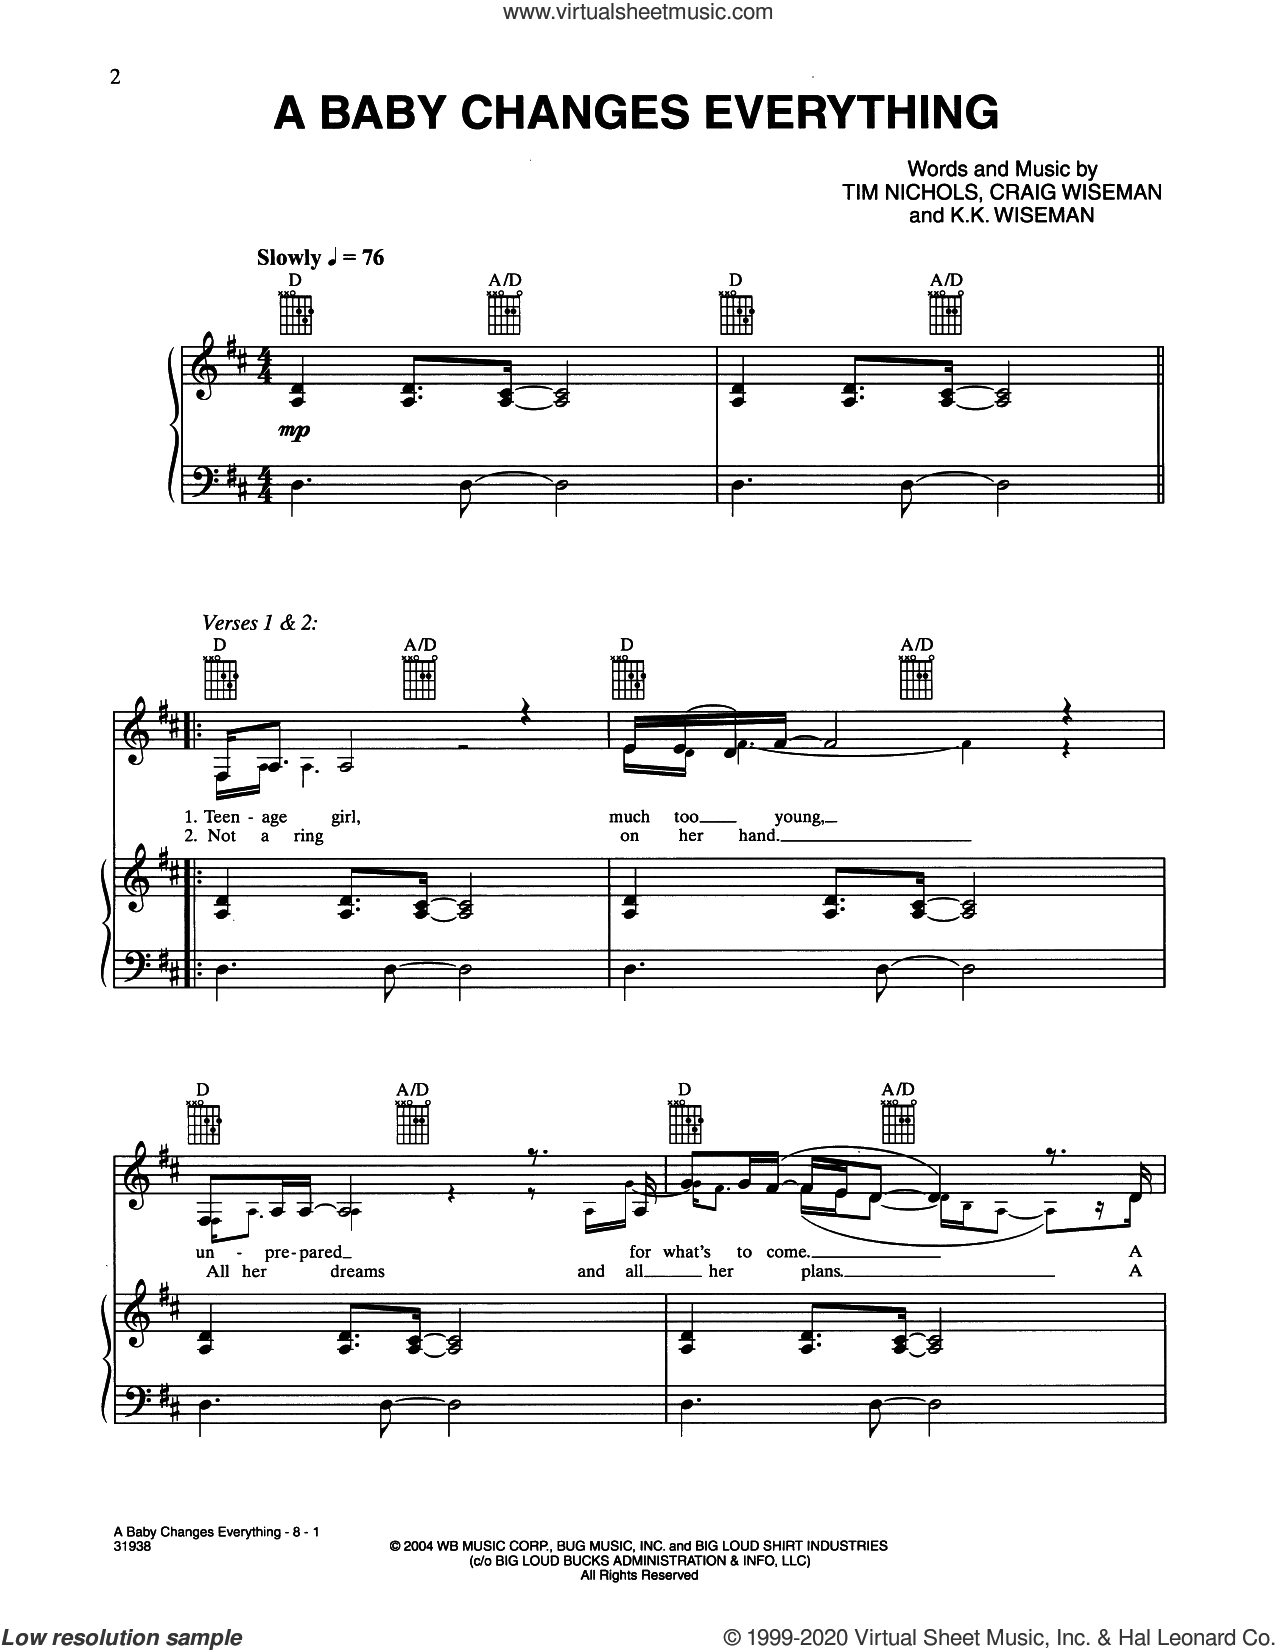 A Baby Changes Everything sheet music for voice and piano by Faith Hill, Craig Wiseman, Kimberly Wiseman and Tim Nichols, intermediate skill level